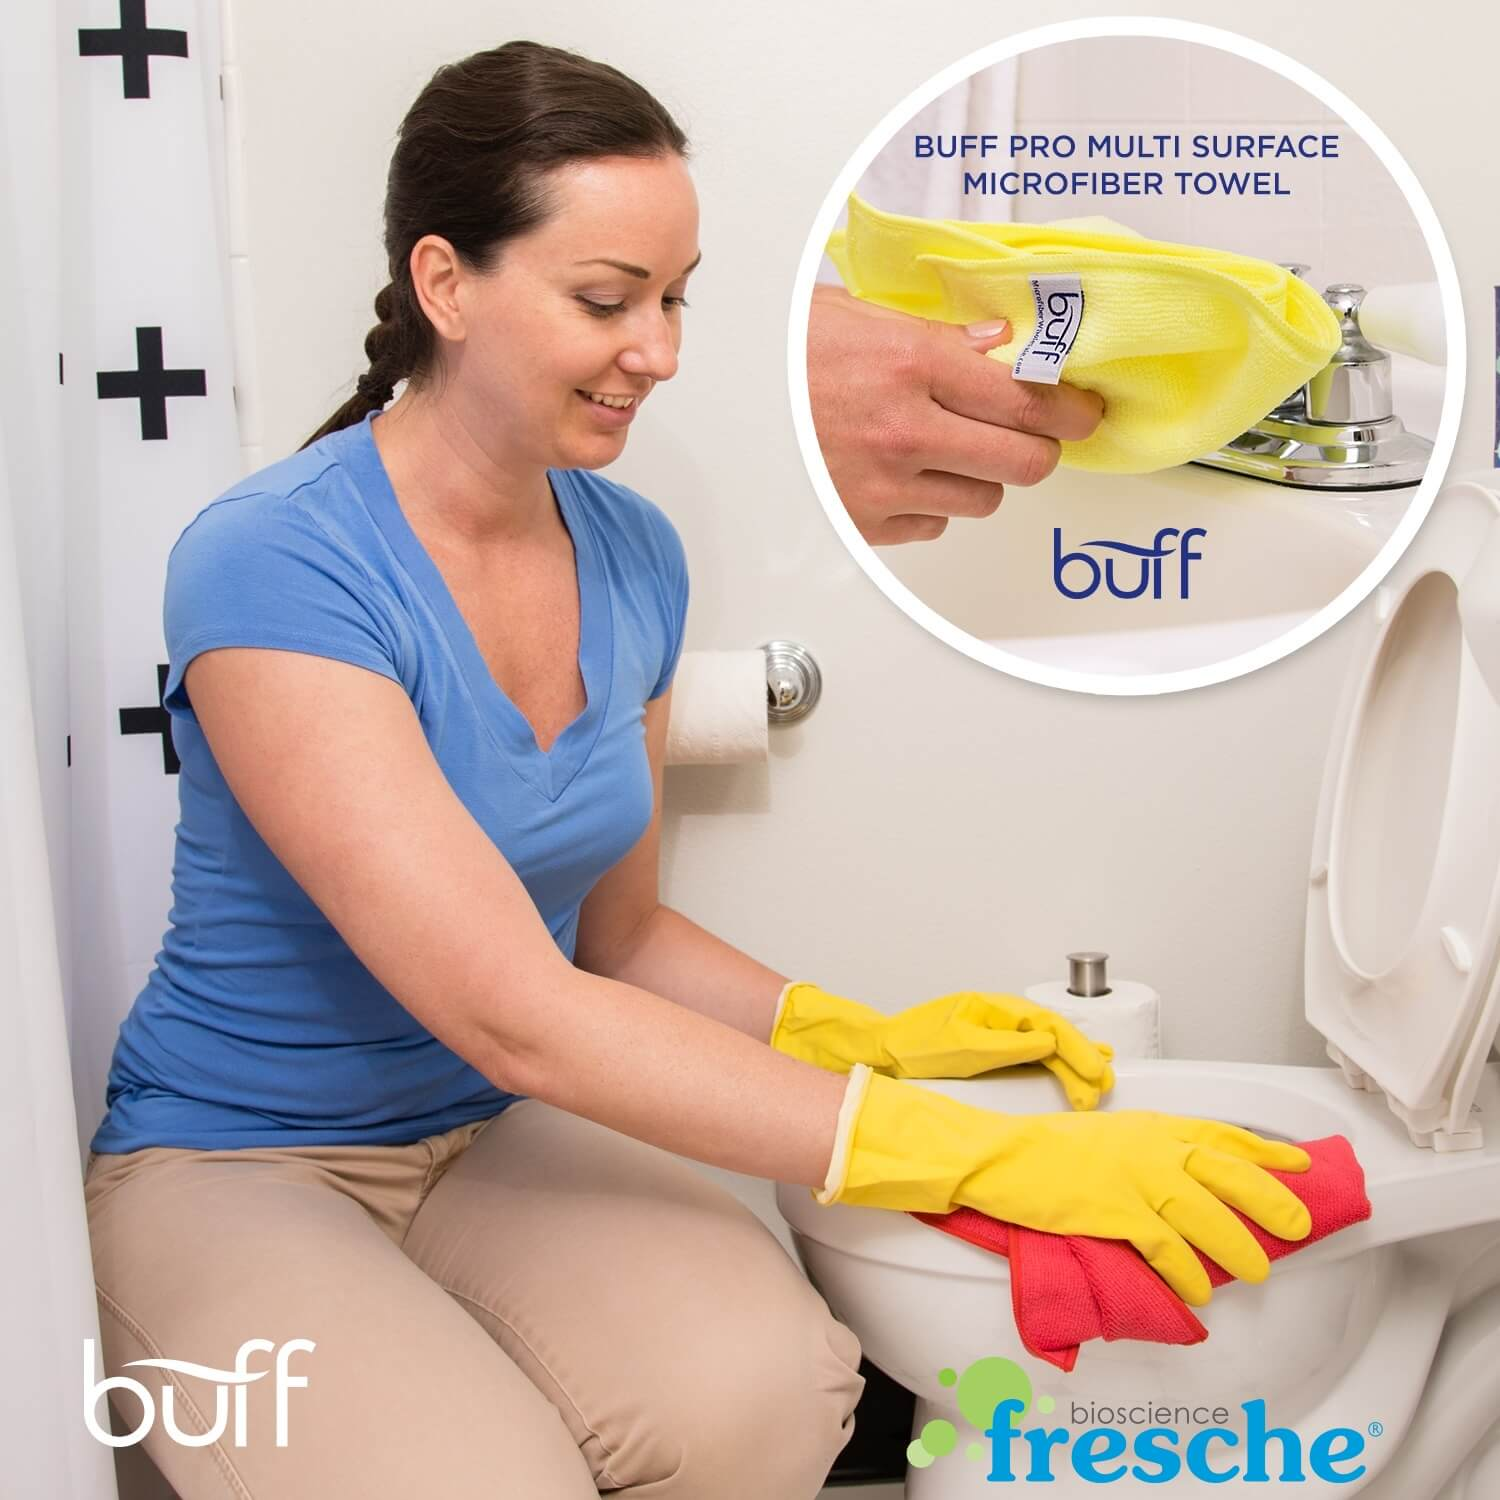 antimicrobial towels removes bacteria, germs, fungus, mold, and mildew in bathrooms